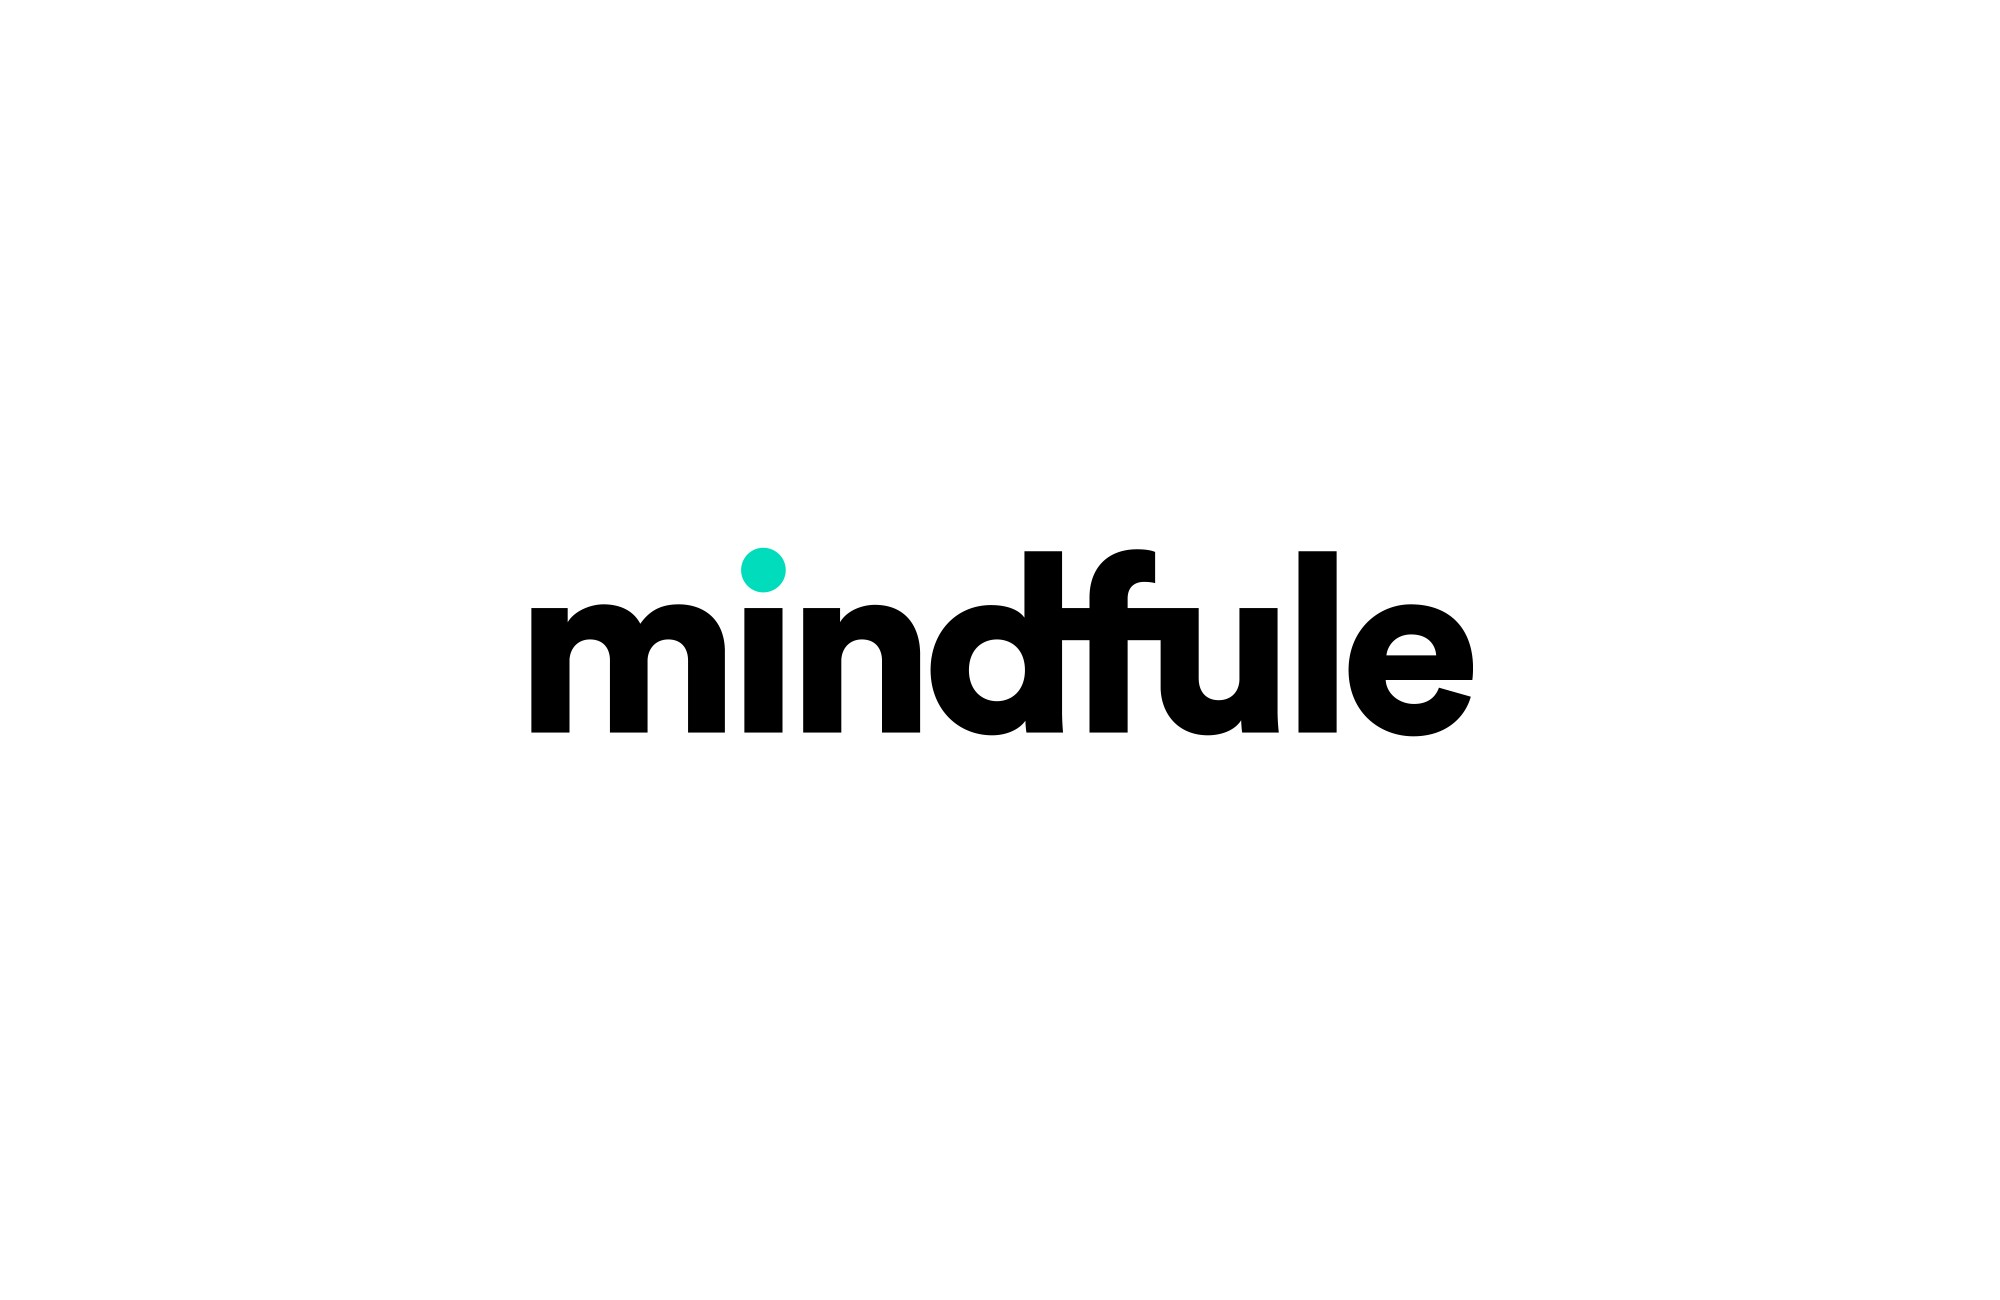 Cover image: Mindfule